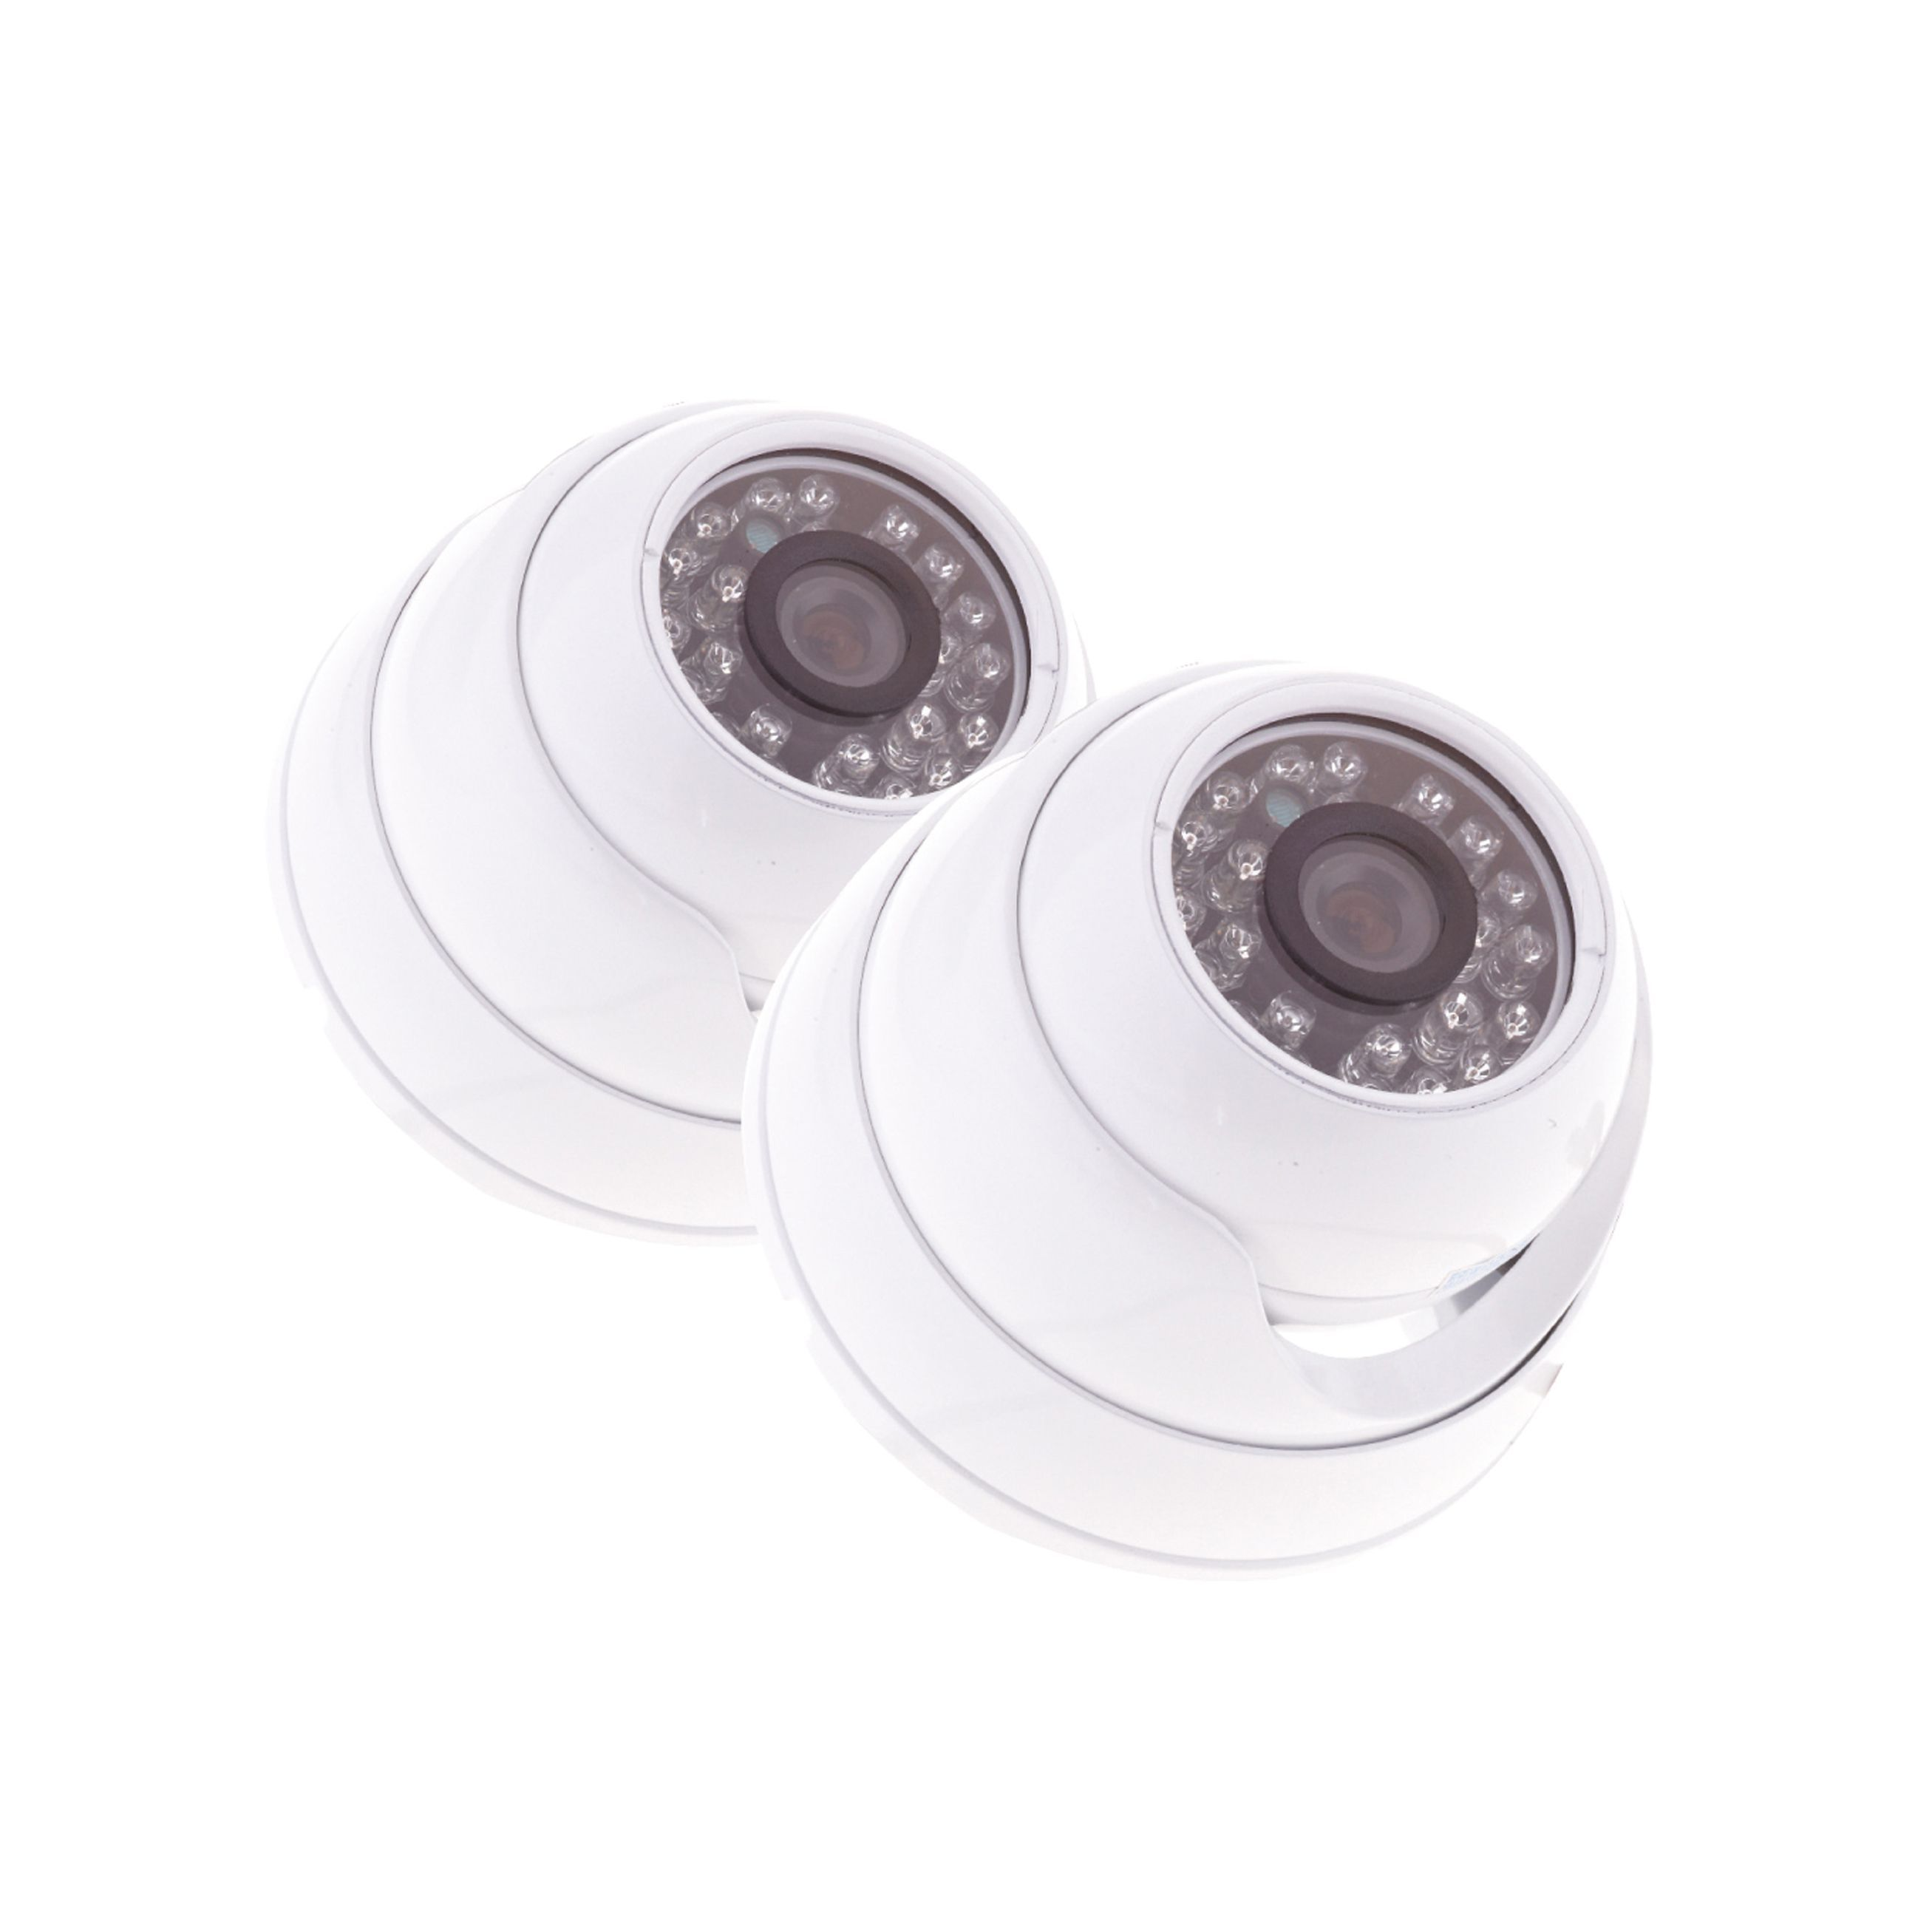 Yale Hd Wired Indoor Dome Camera Twin Pack Hdc 302w 2